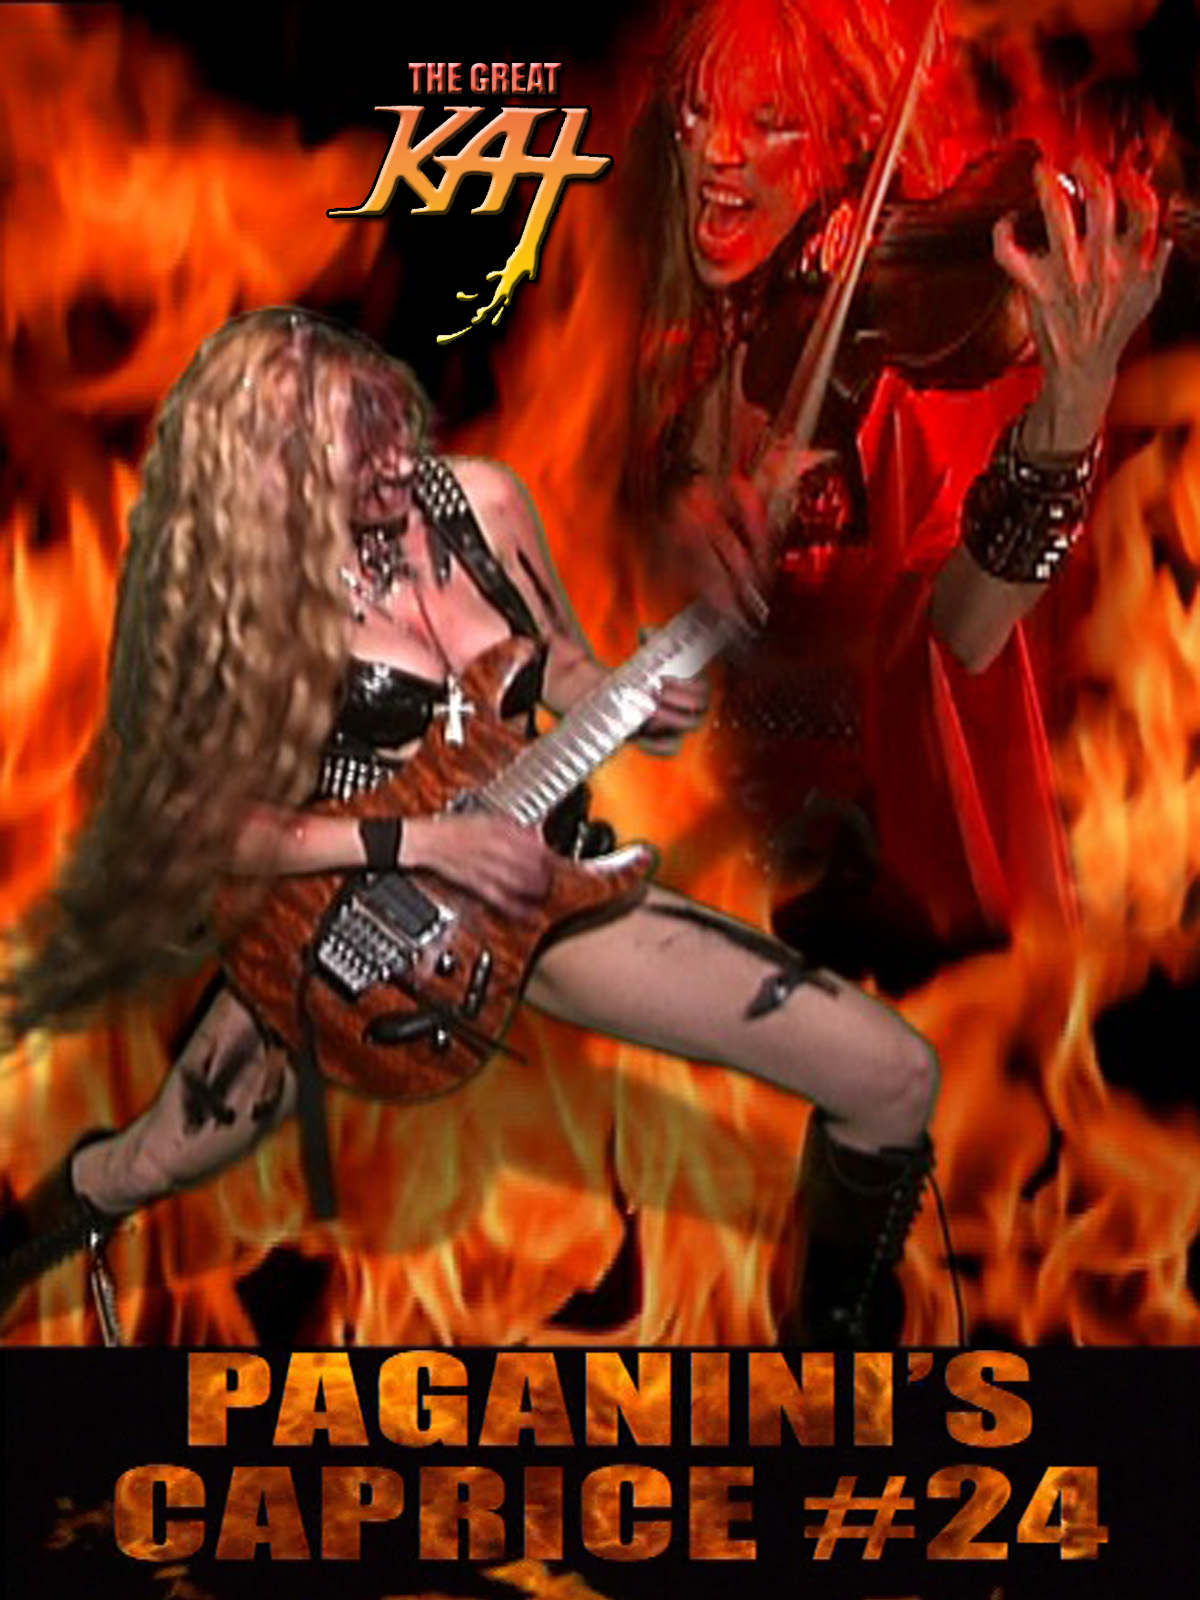 The Great Kat PAGANINI'S CAPRICE #24